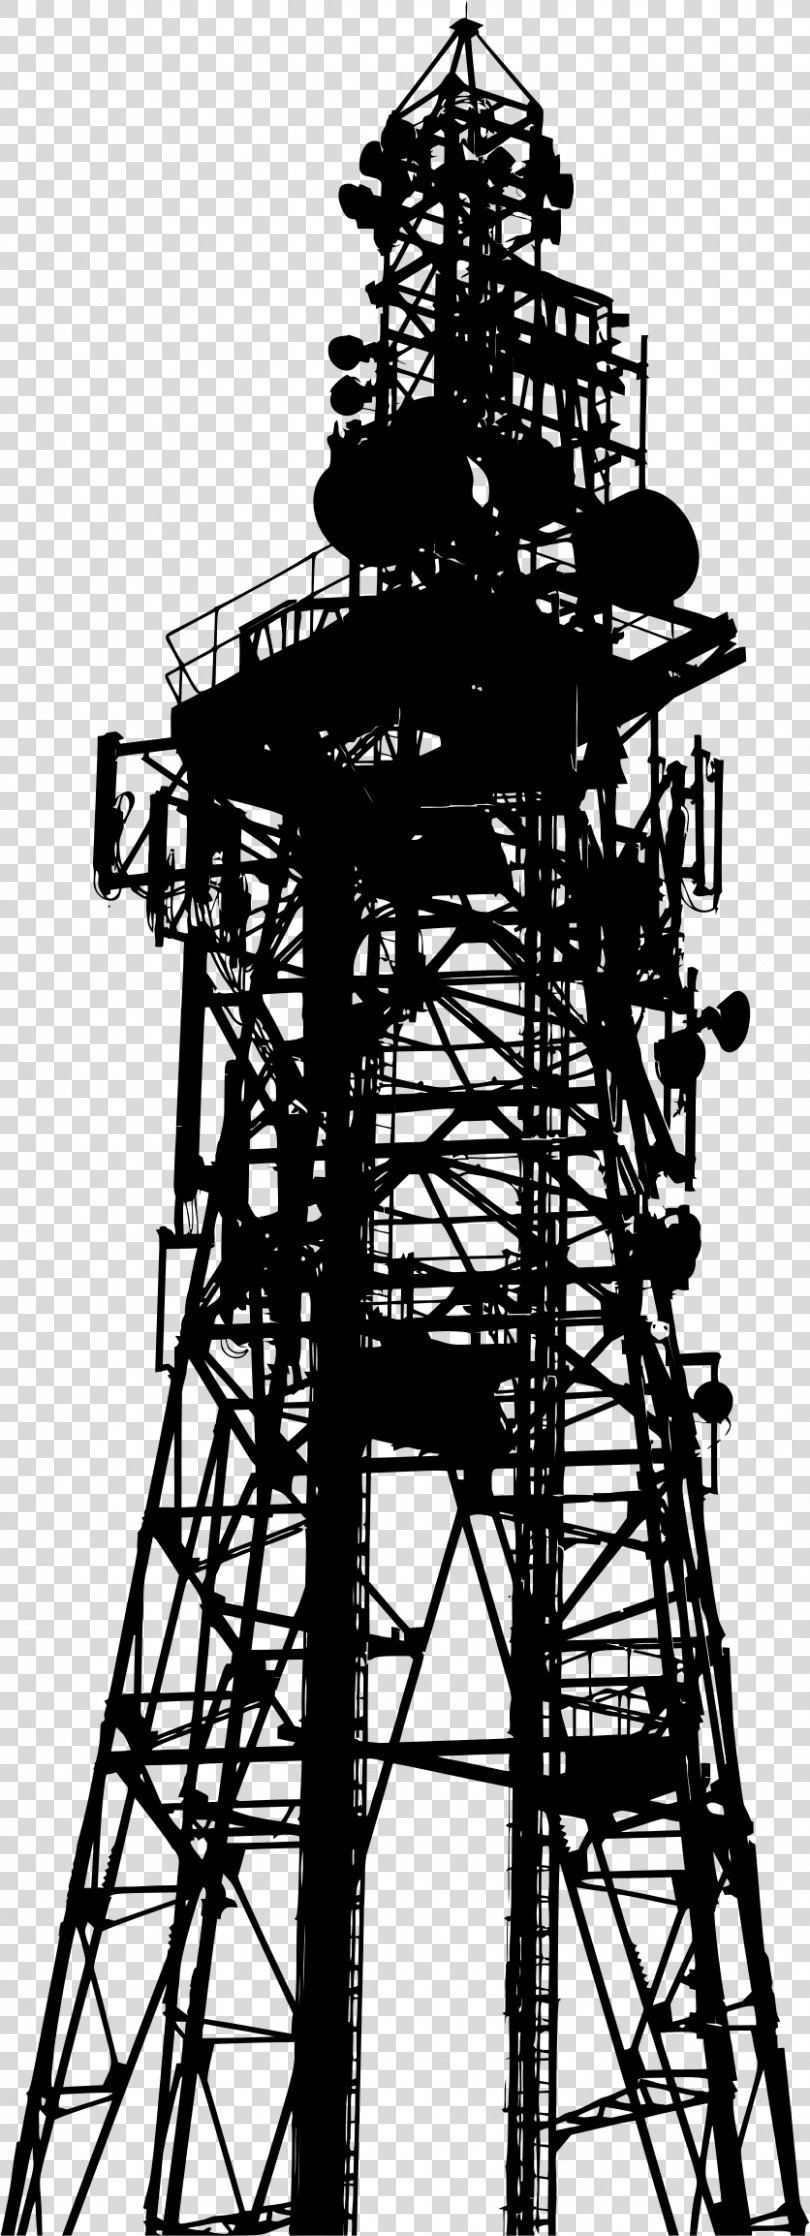 Telecommunications Tower Silhouette Clip Art, Wireless PNG